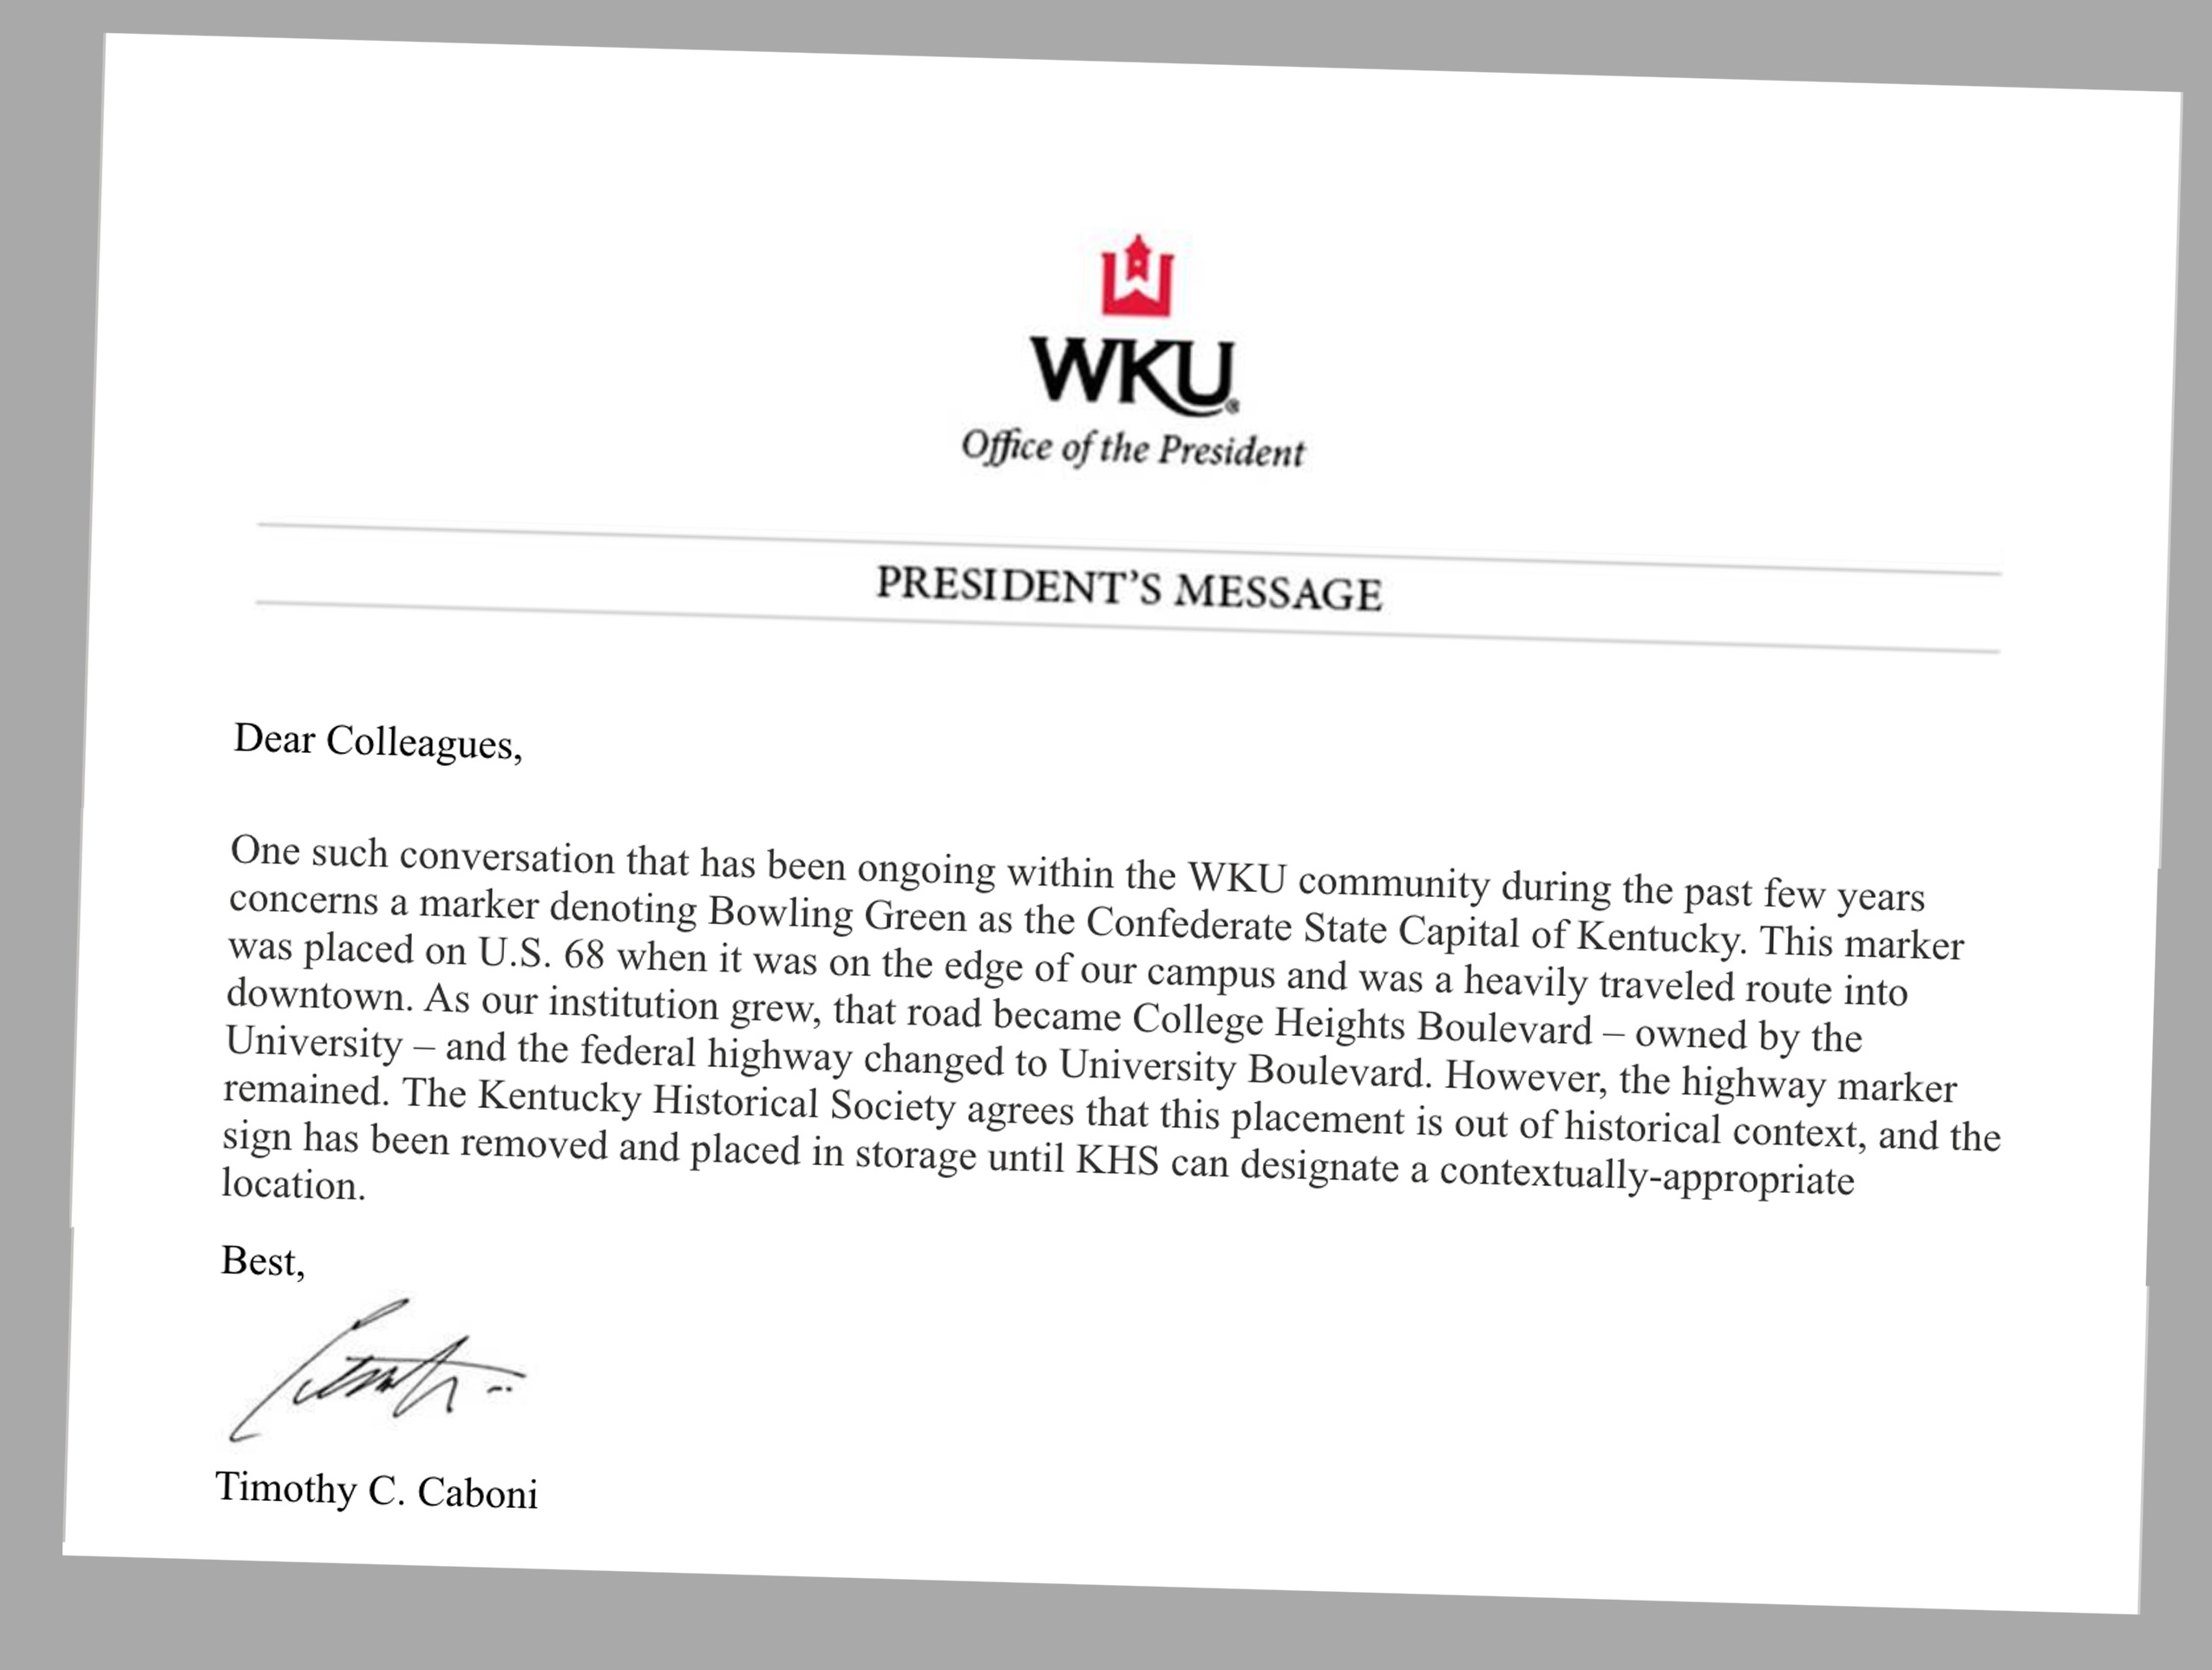 A portion of an email from WKU President Timothy Caboni on August, 21, 2020 to all faculty and staff regarding the removal of a Confederate marker on campus.